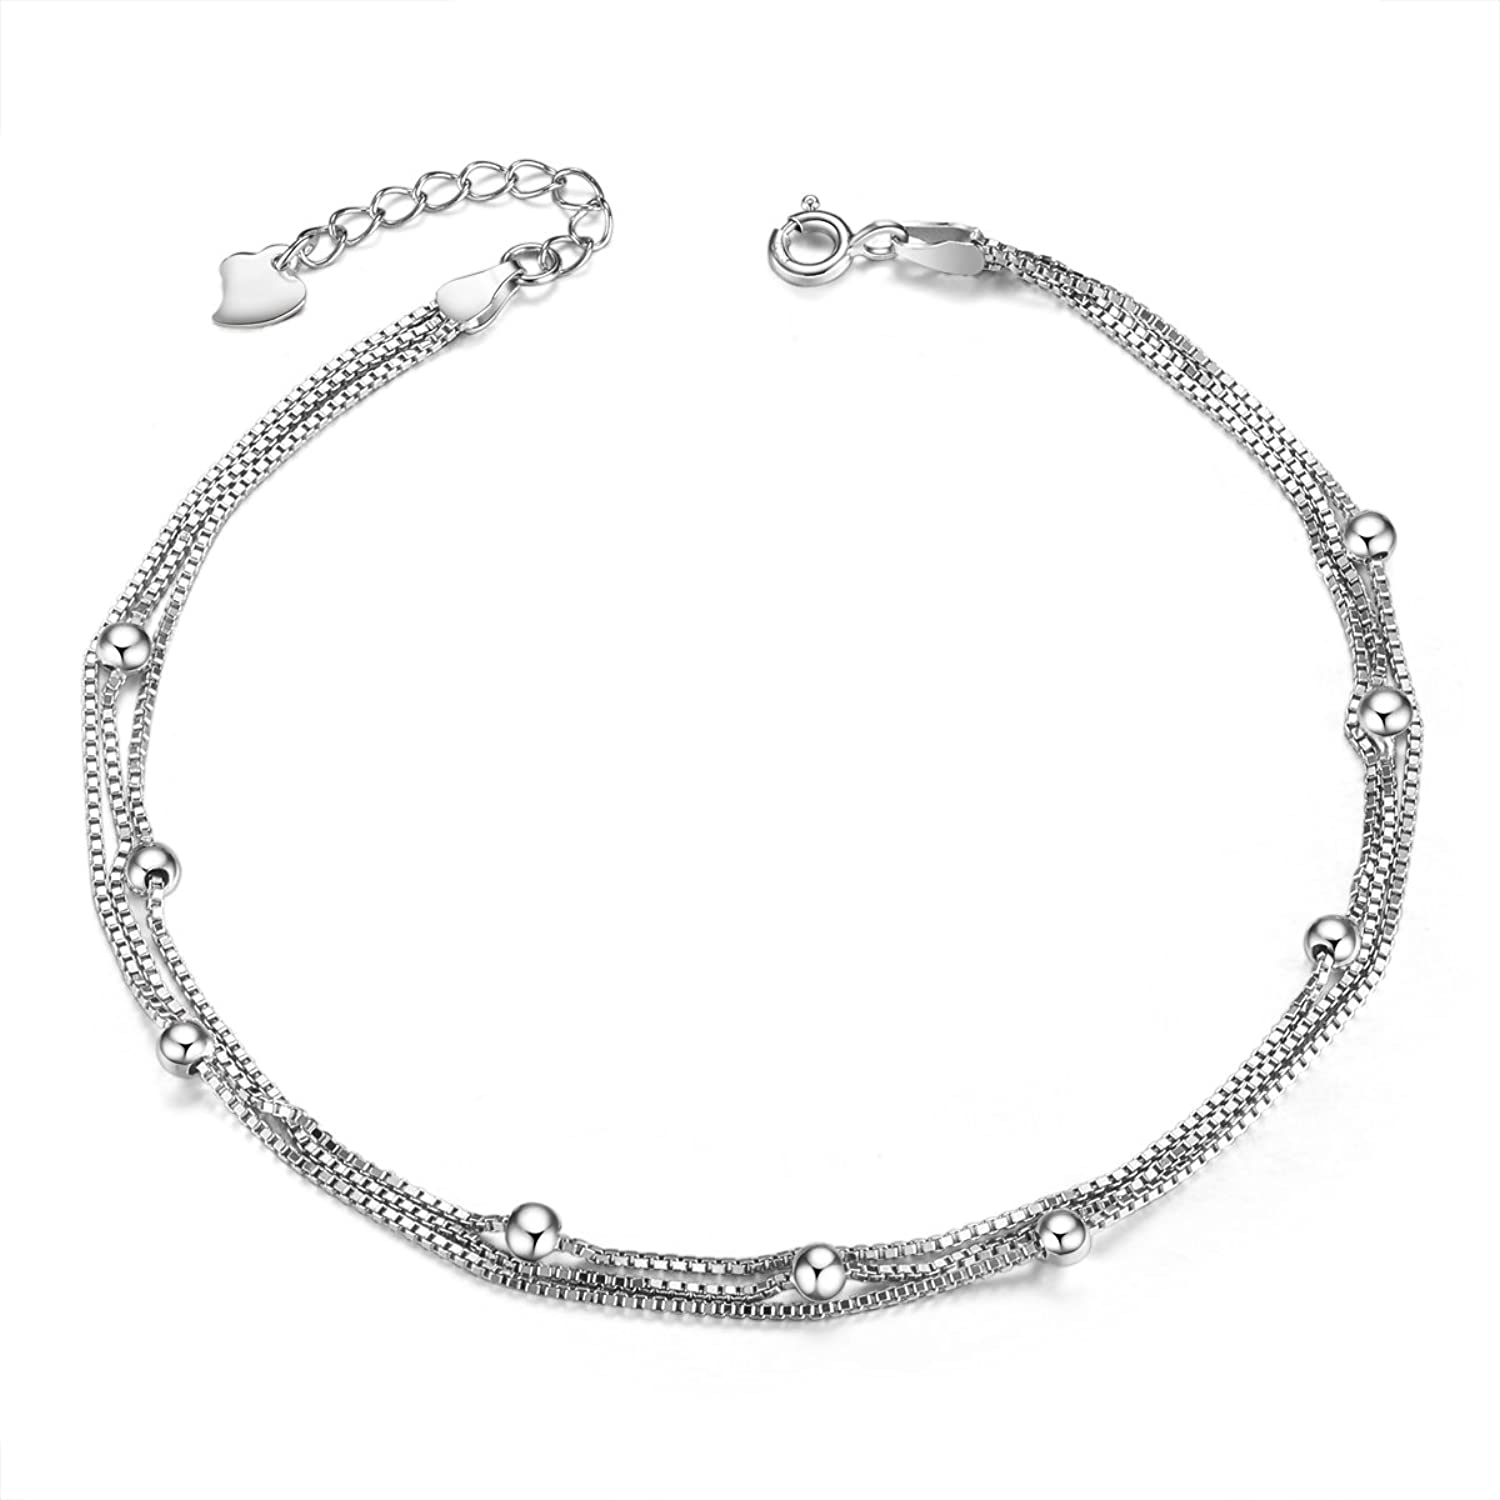 jewellery from ve bracelets bracelet pin private my i collection ankle sterling length silver in anklet